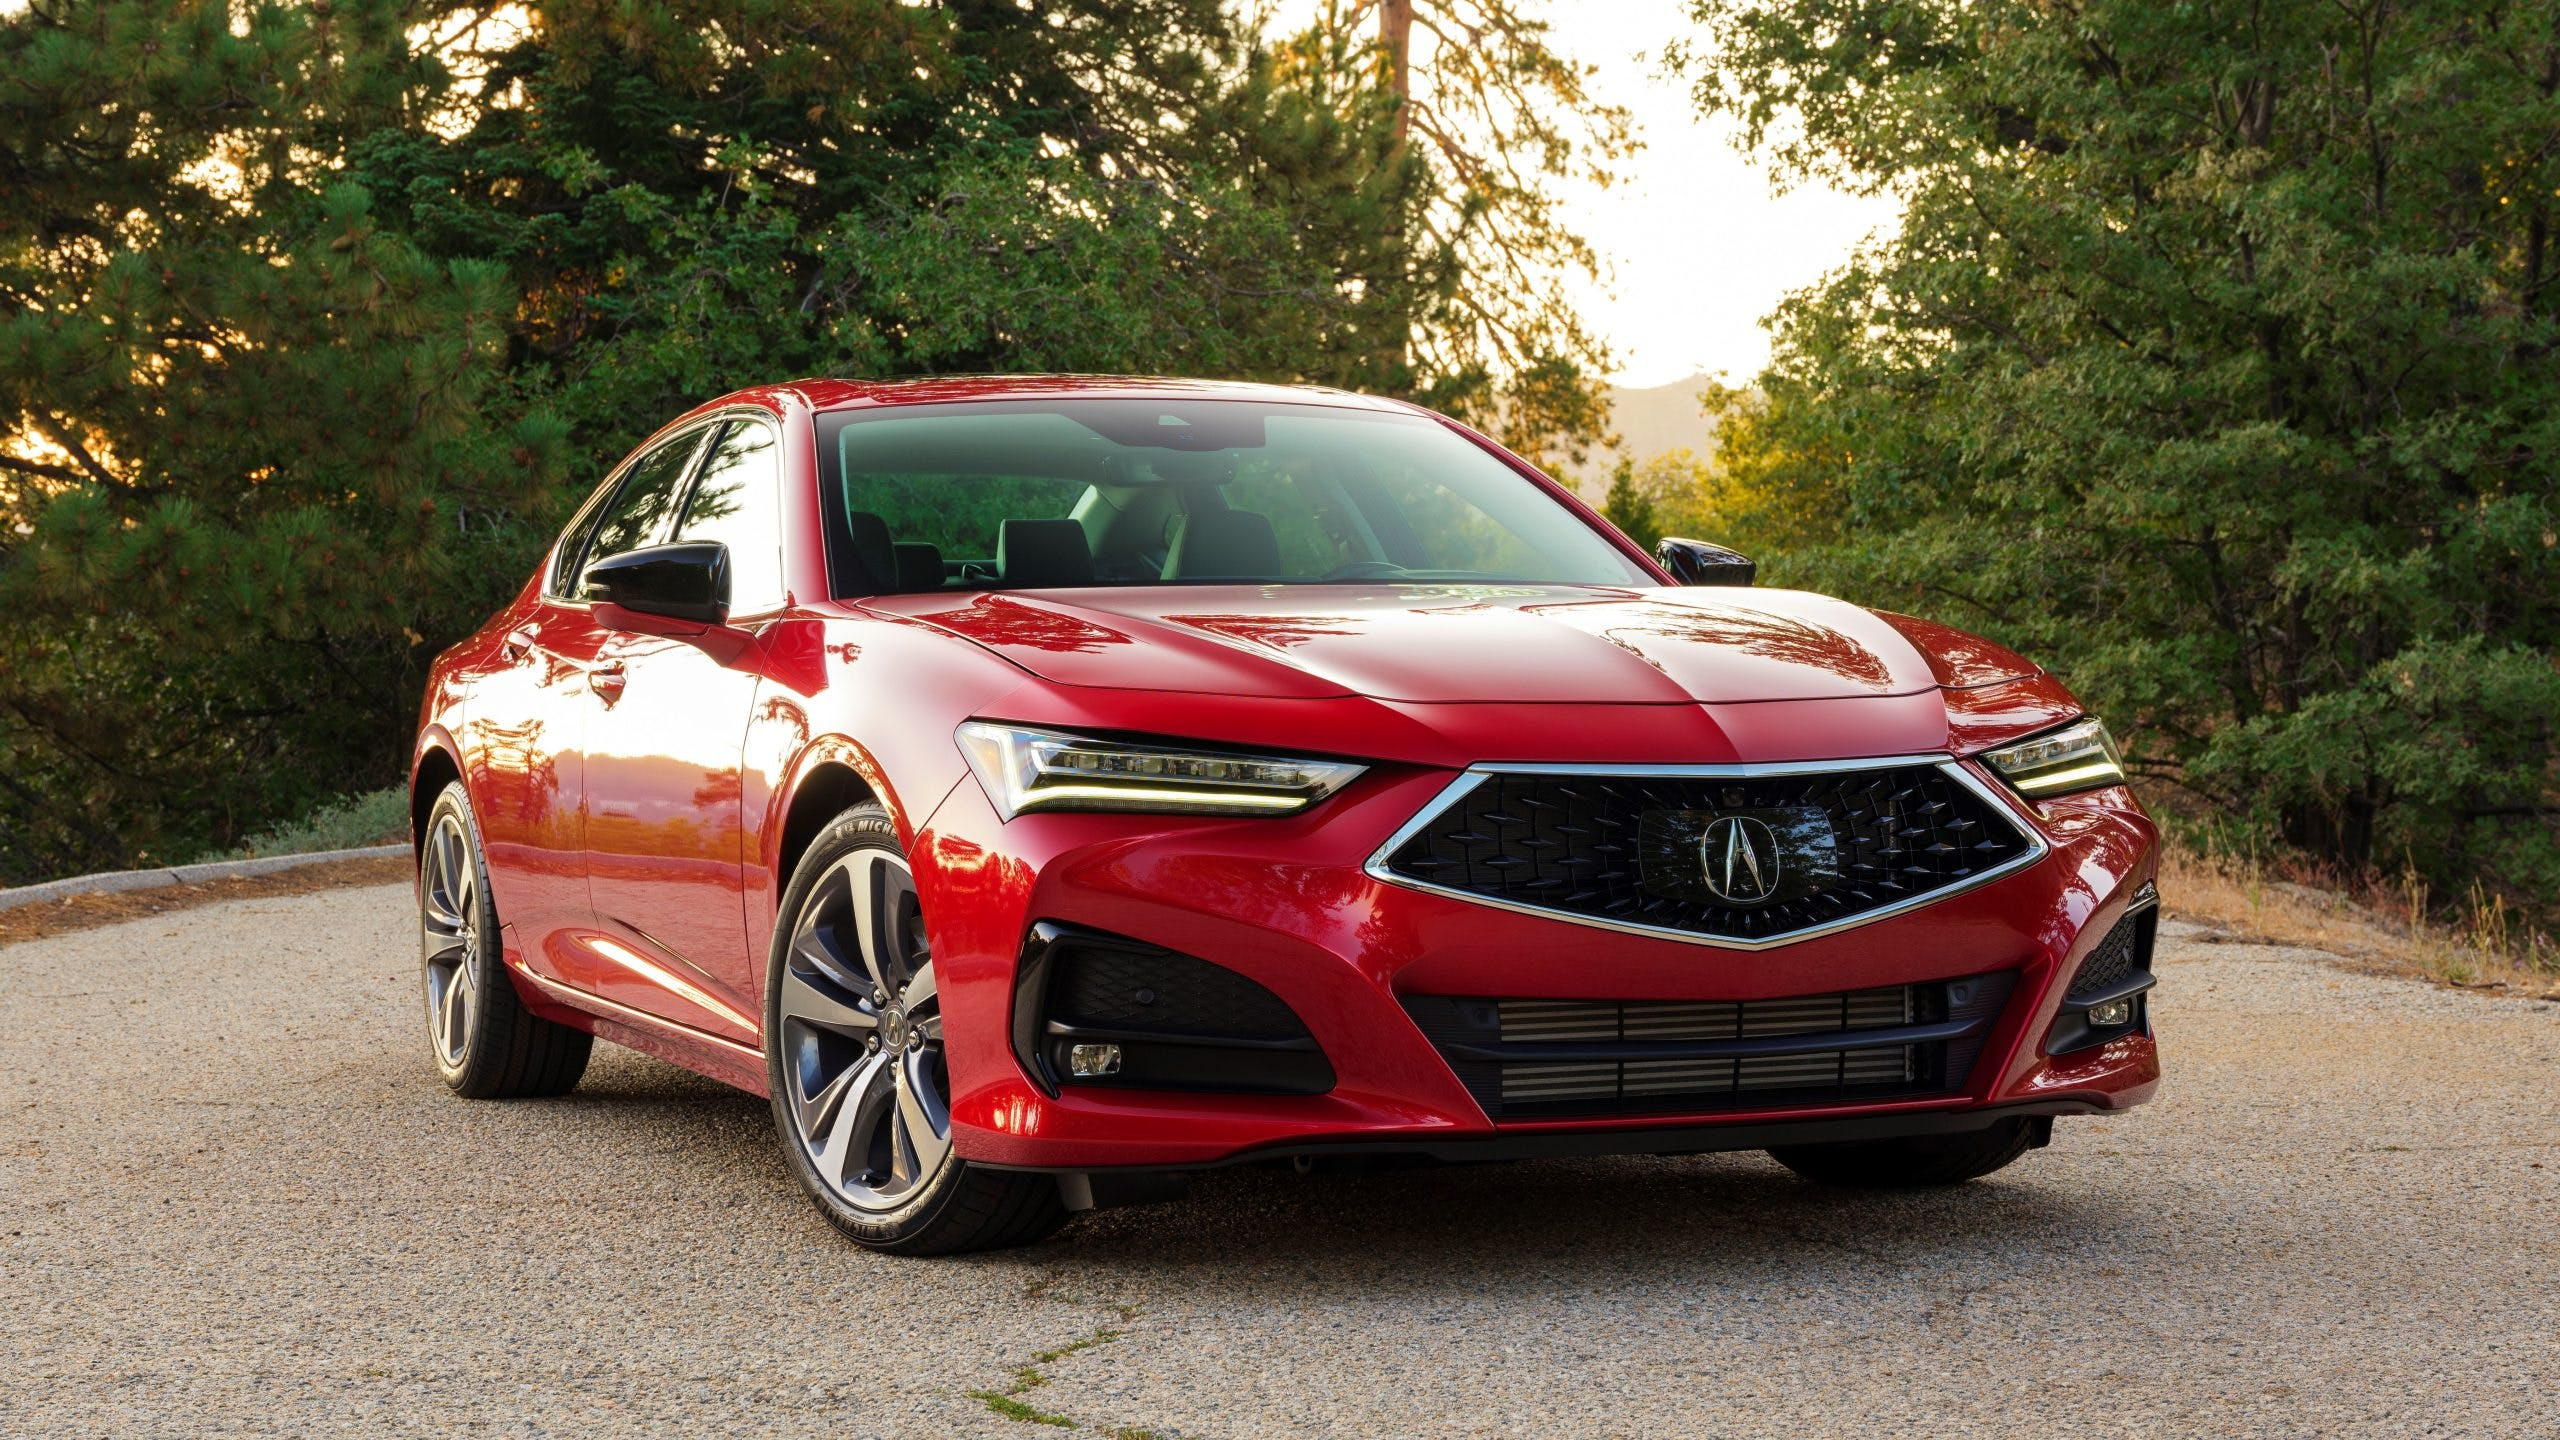 2021 acura tlx review: new design fixes some flaws, adds